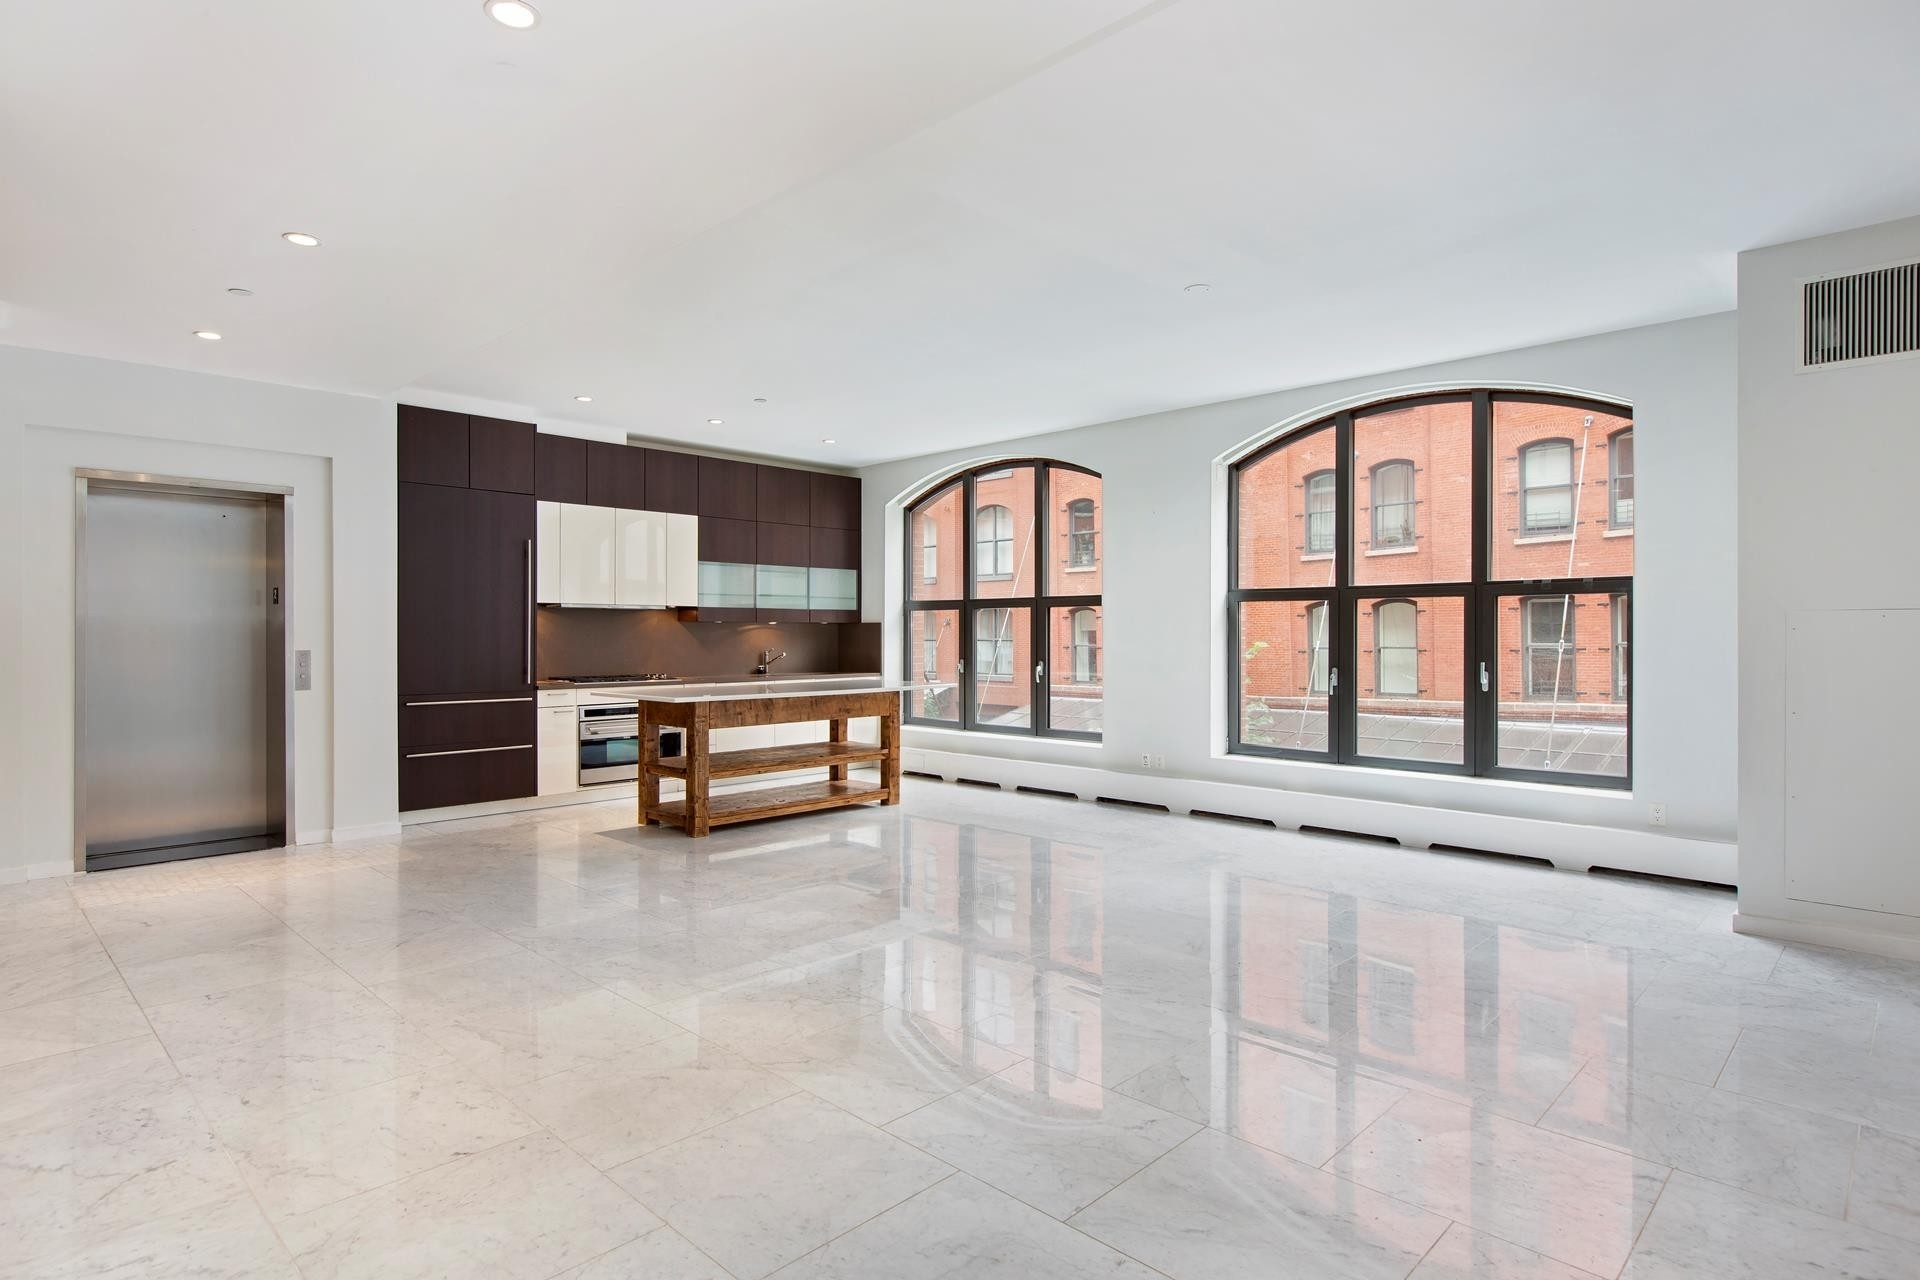 Property at The Fairchild, 55 Vestry St, 2D TriBeCa, New York, NY 10013